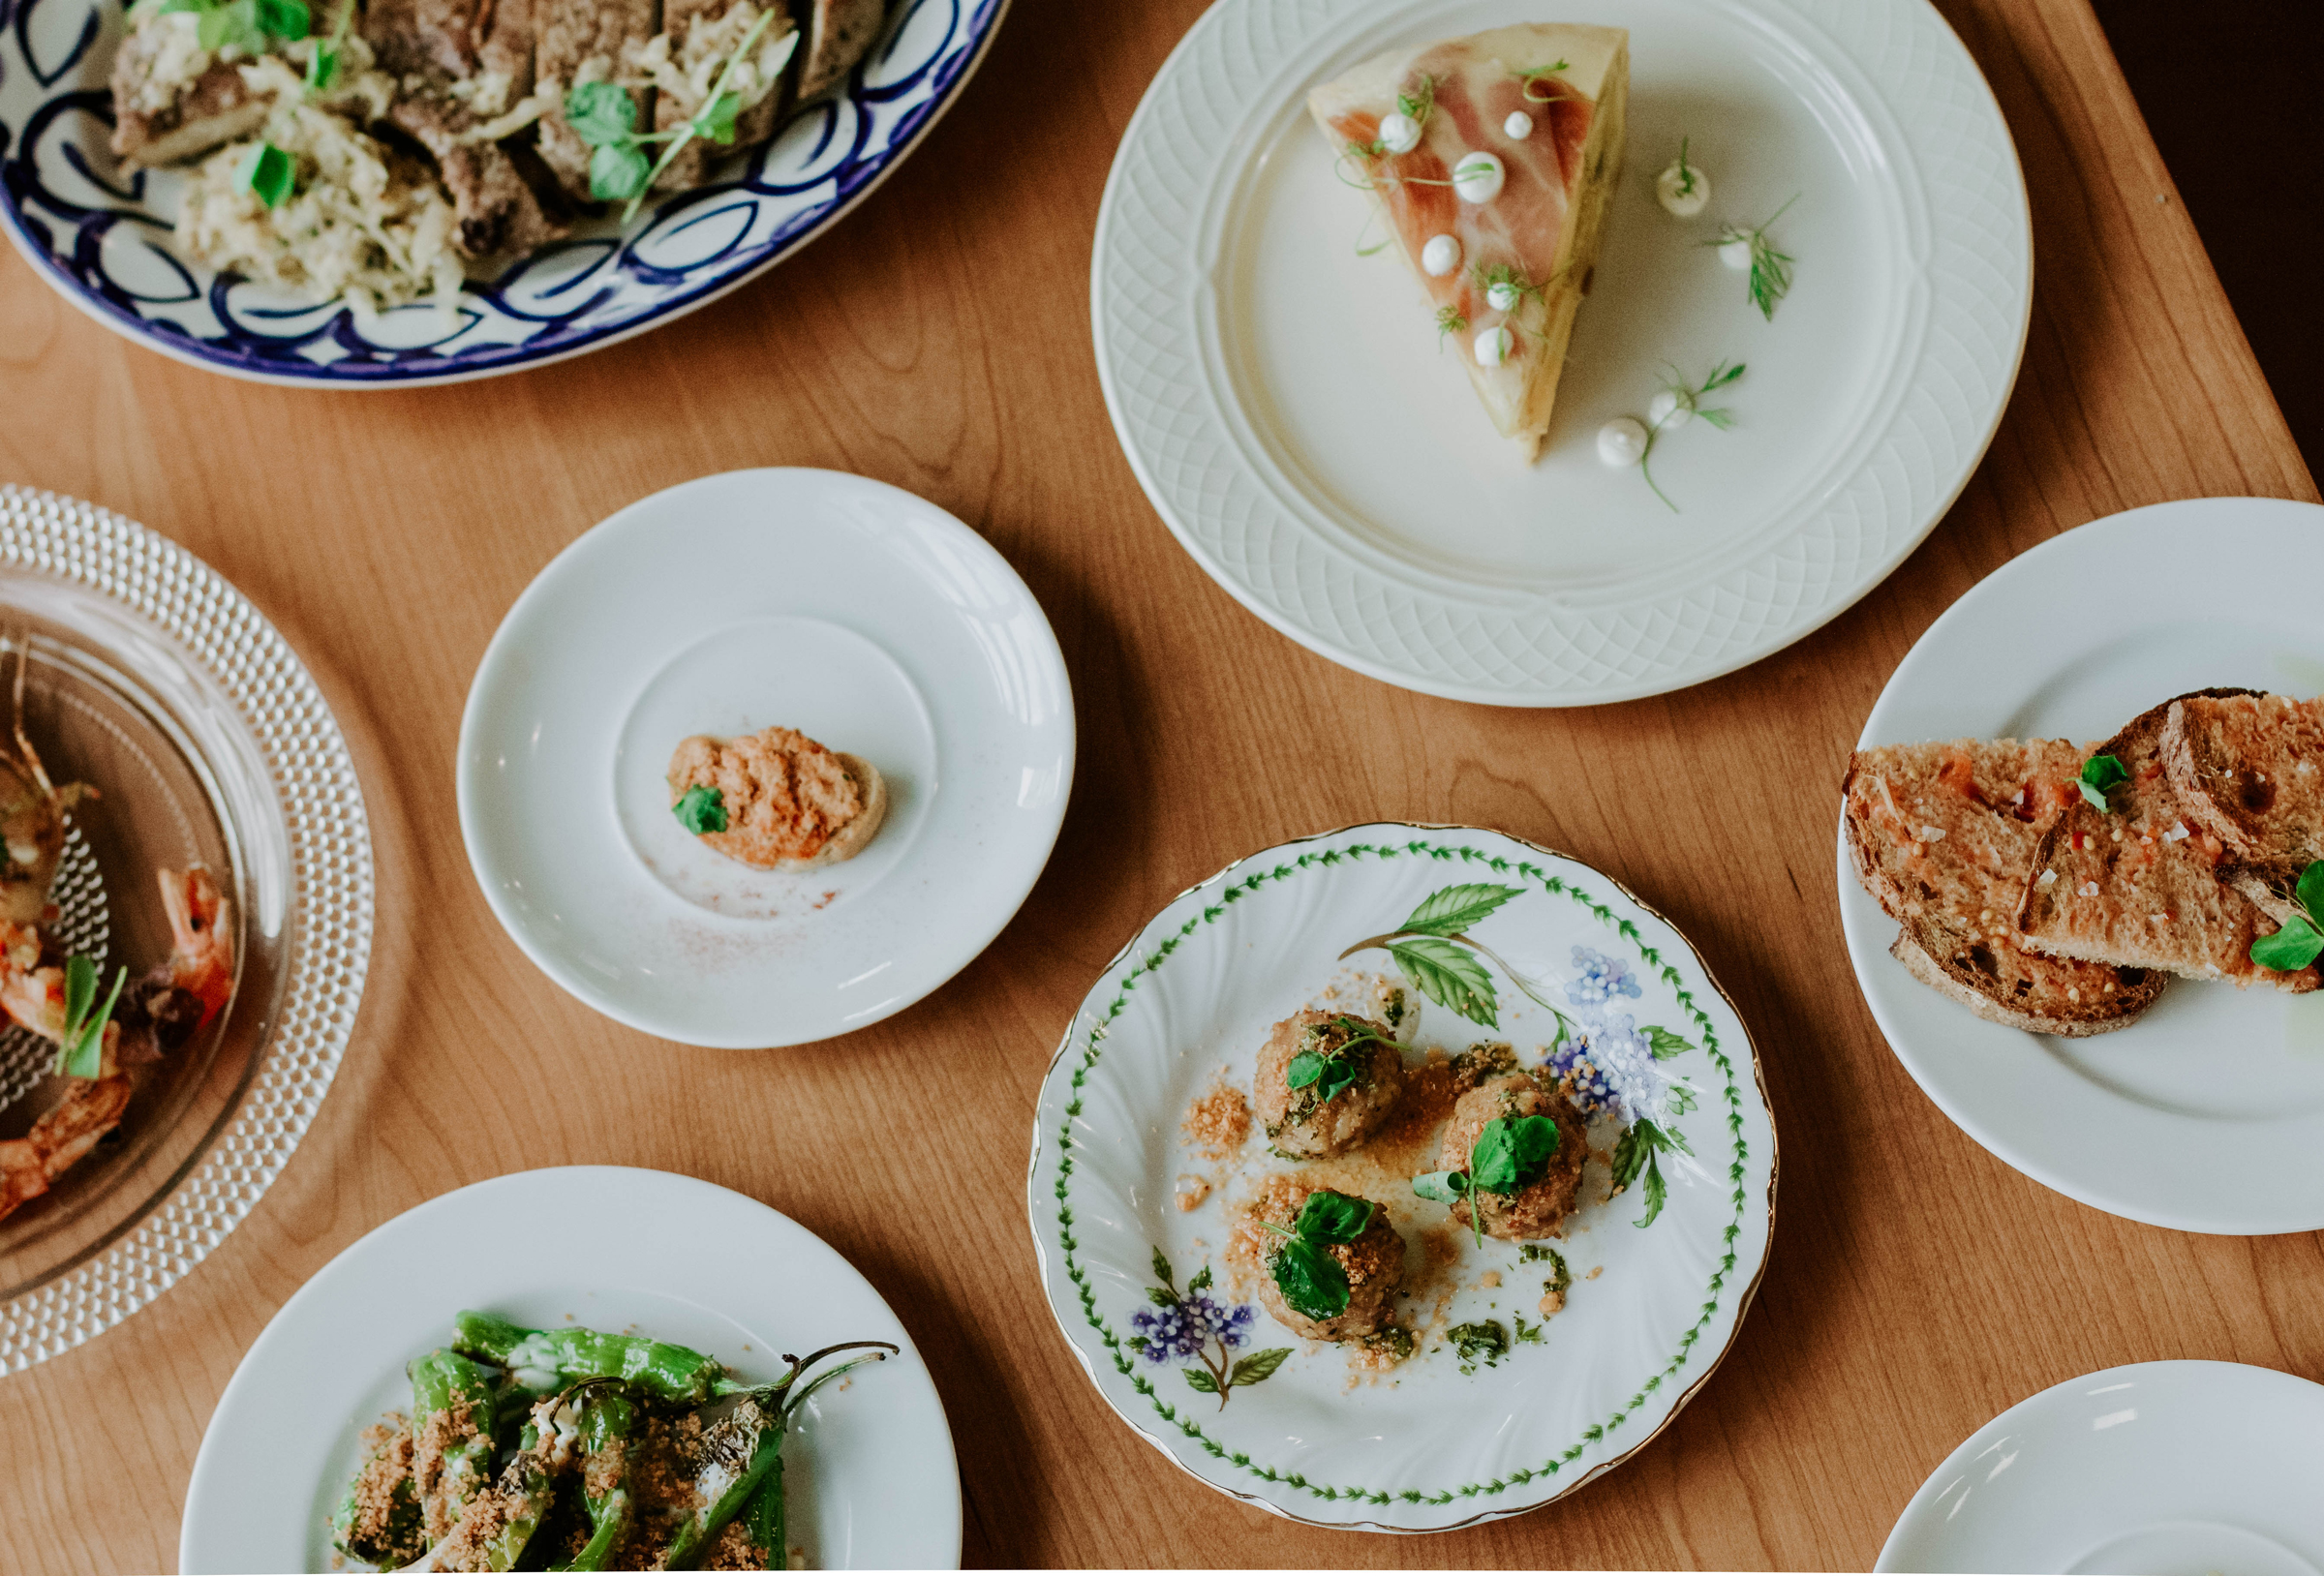 Zoko 822 brings Basque Country cuisine to Grand Rapids.